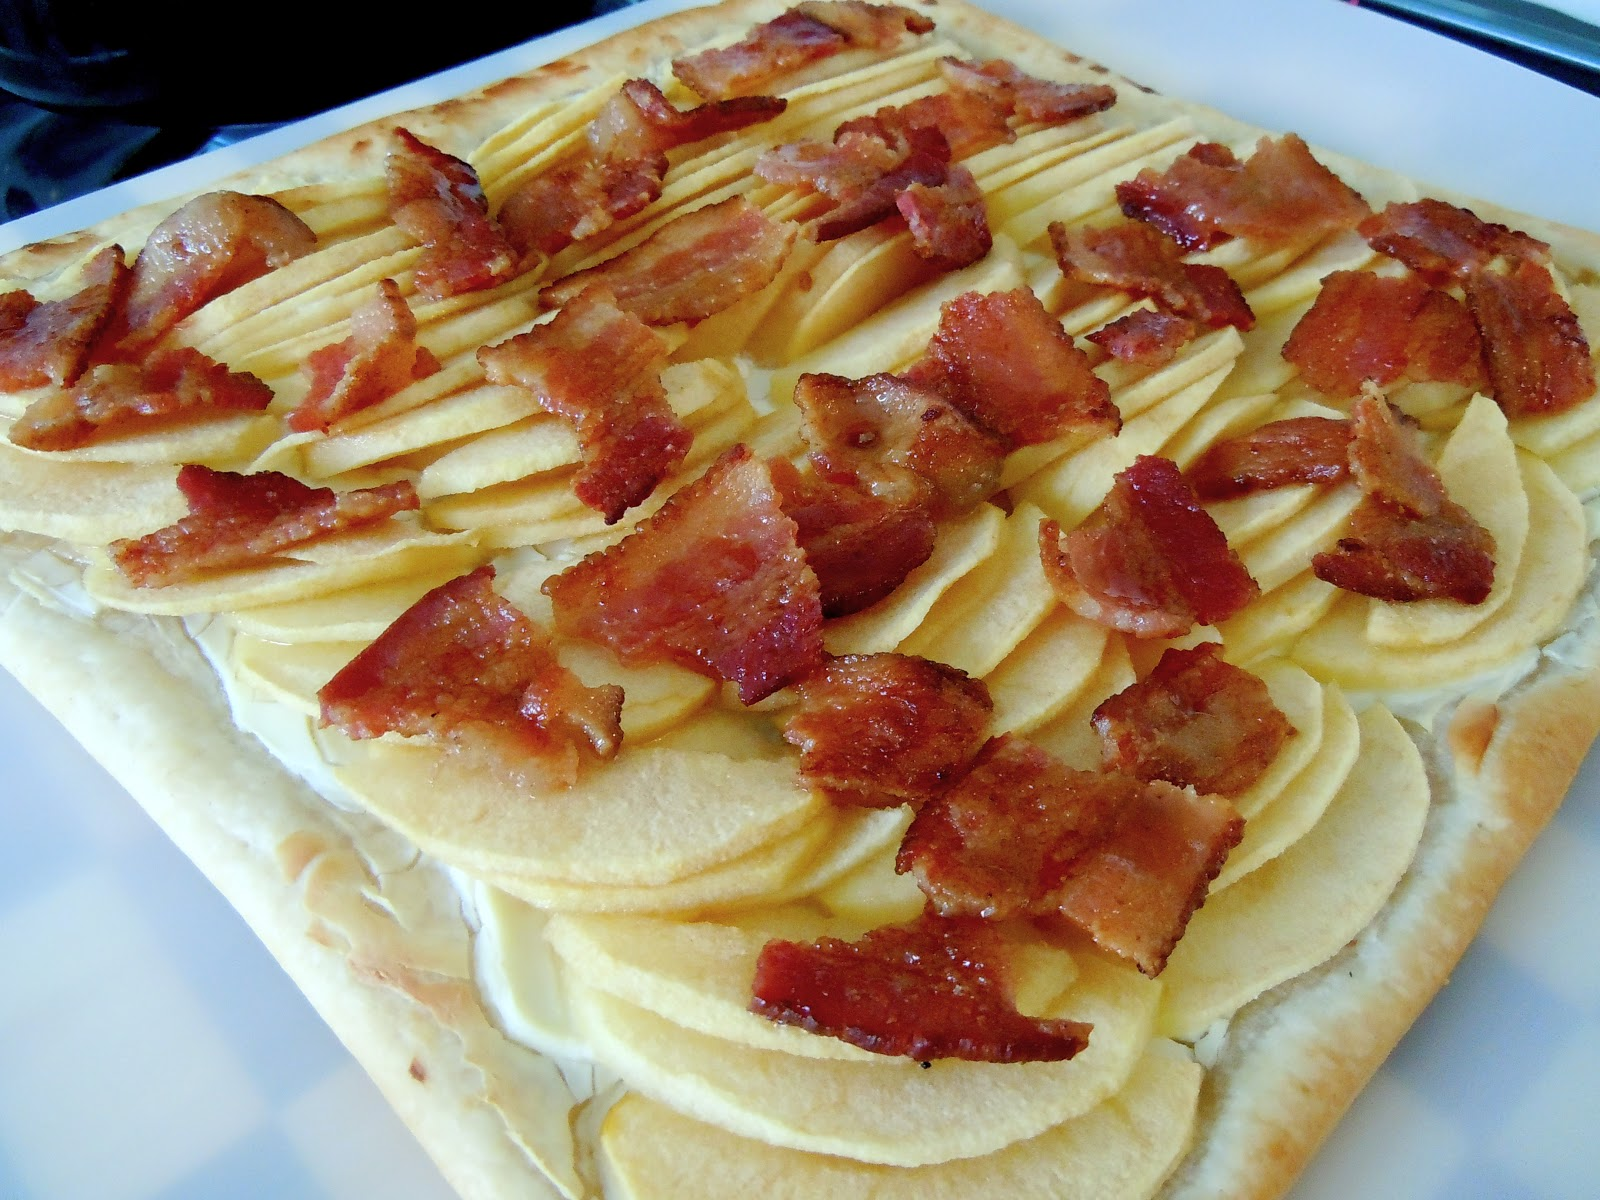 ... breakfast bacon and apple tart and it did the trick the flakey crust